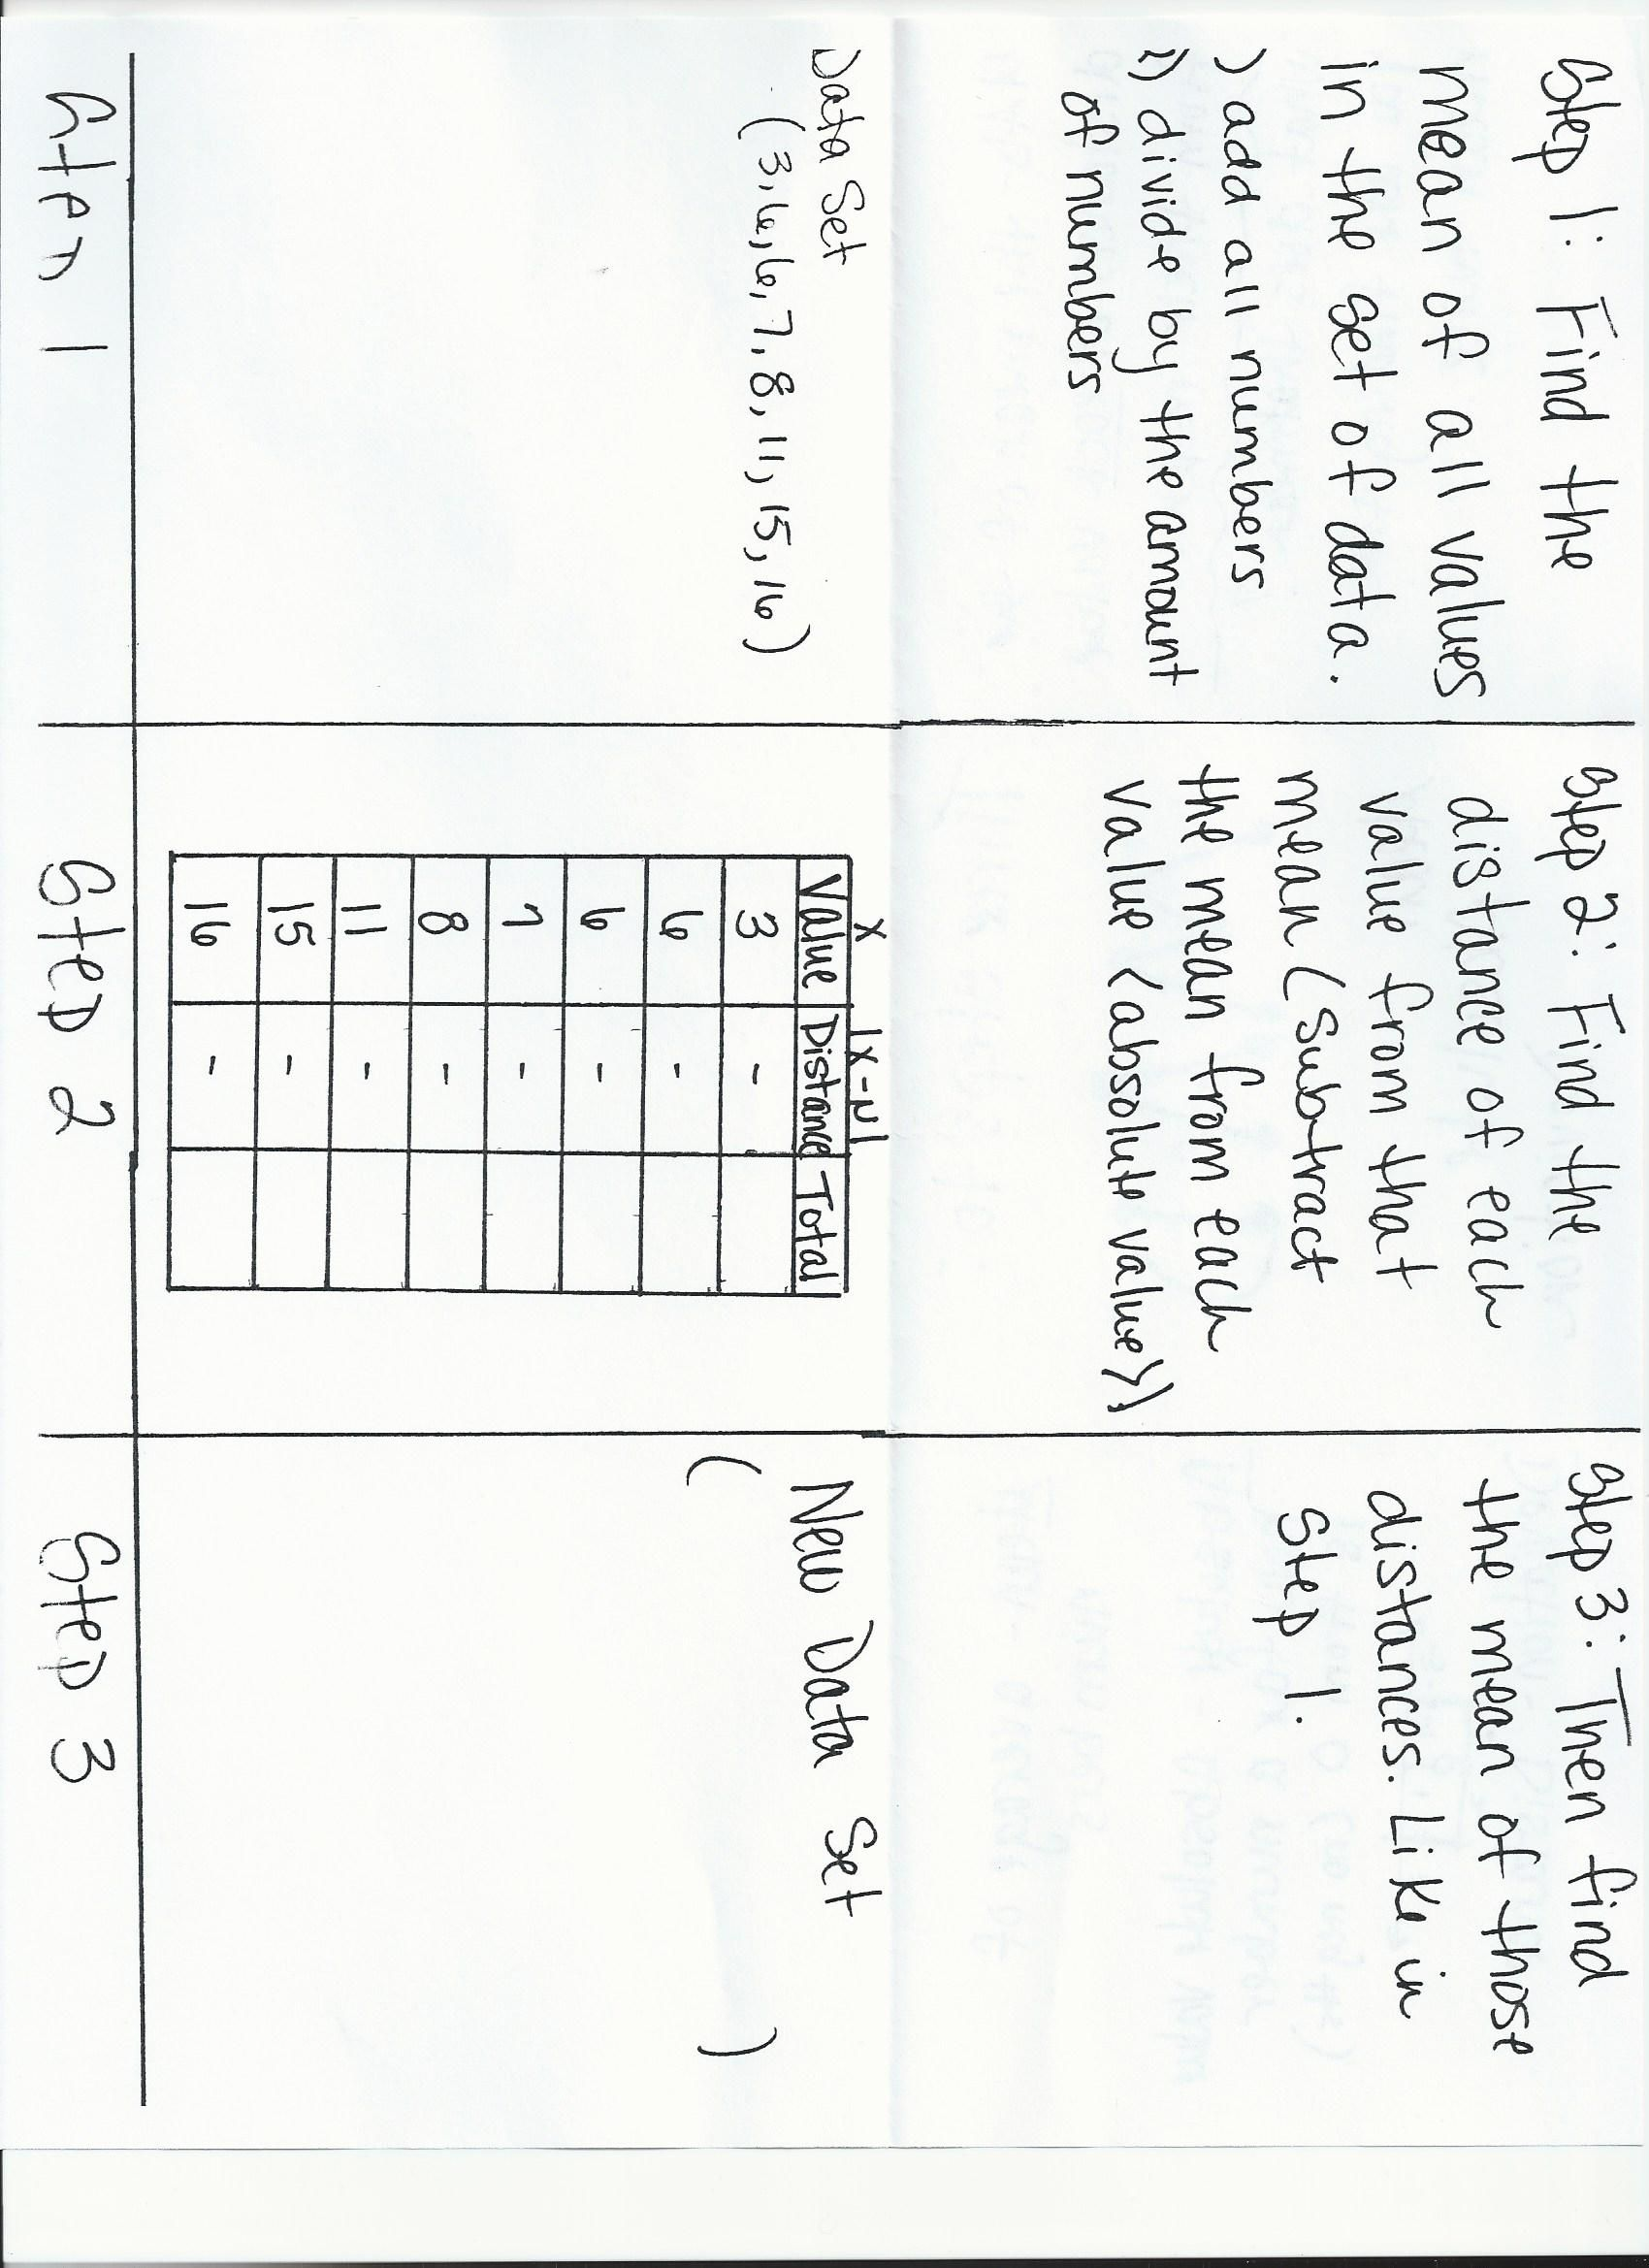 hight resolution of Mean Absolute Deviation Foldable- Inside   Math school